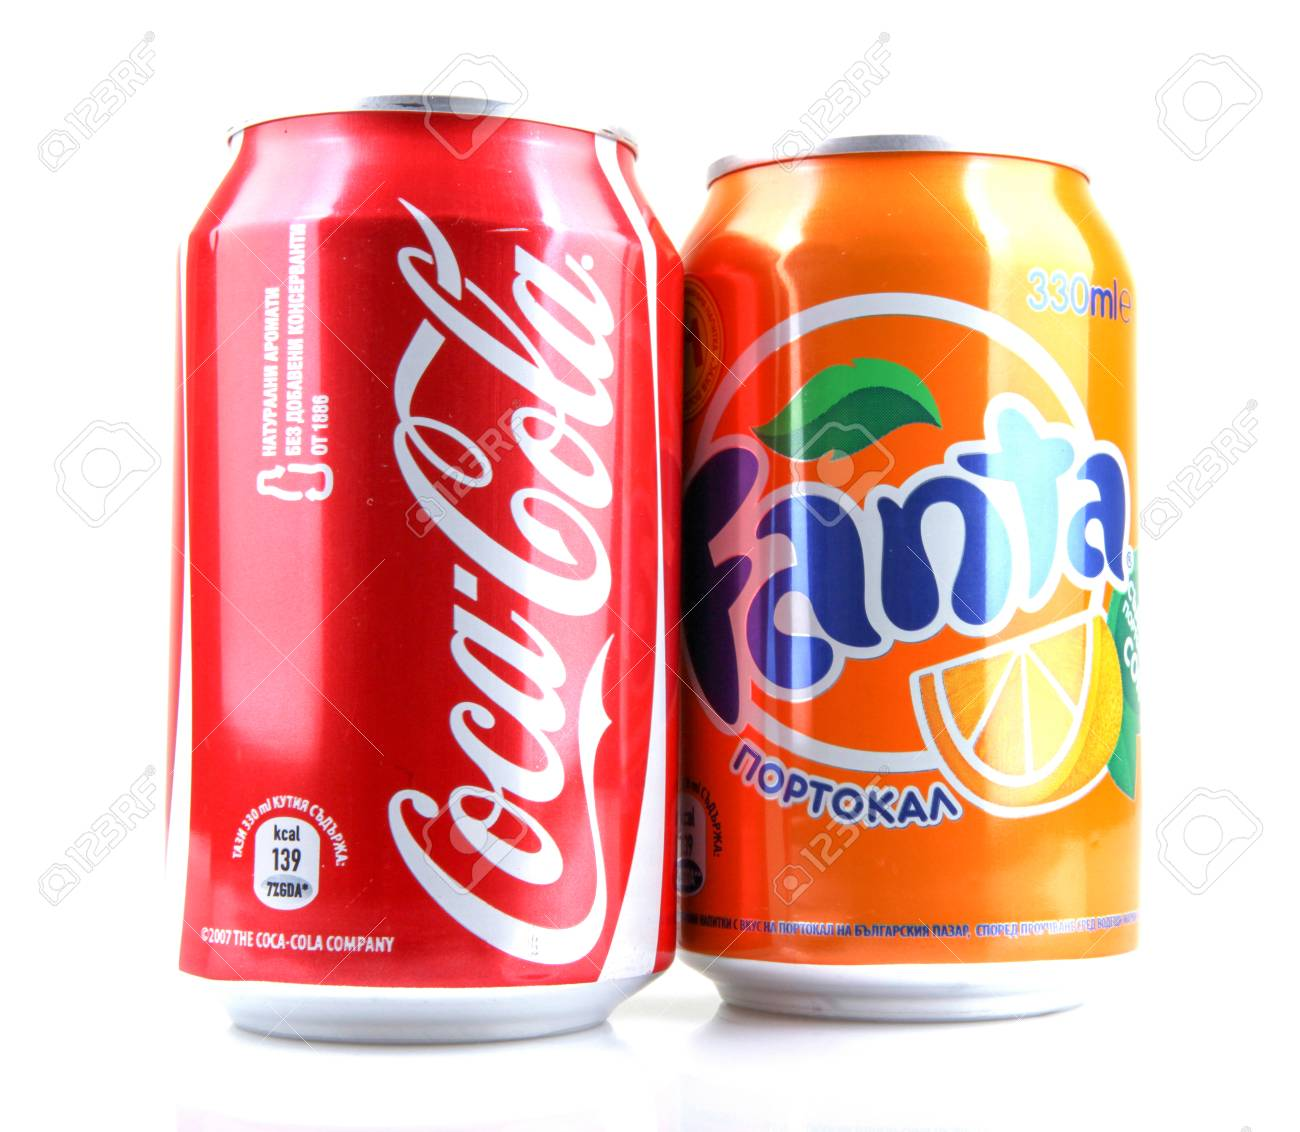 AYTOS, BULGARIA - JANUARY 23, 2014: Global brand of fruit-flavored carbonated soft drinks created by The Coca-Cola Company. - 131958836